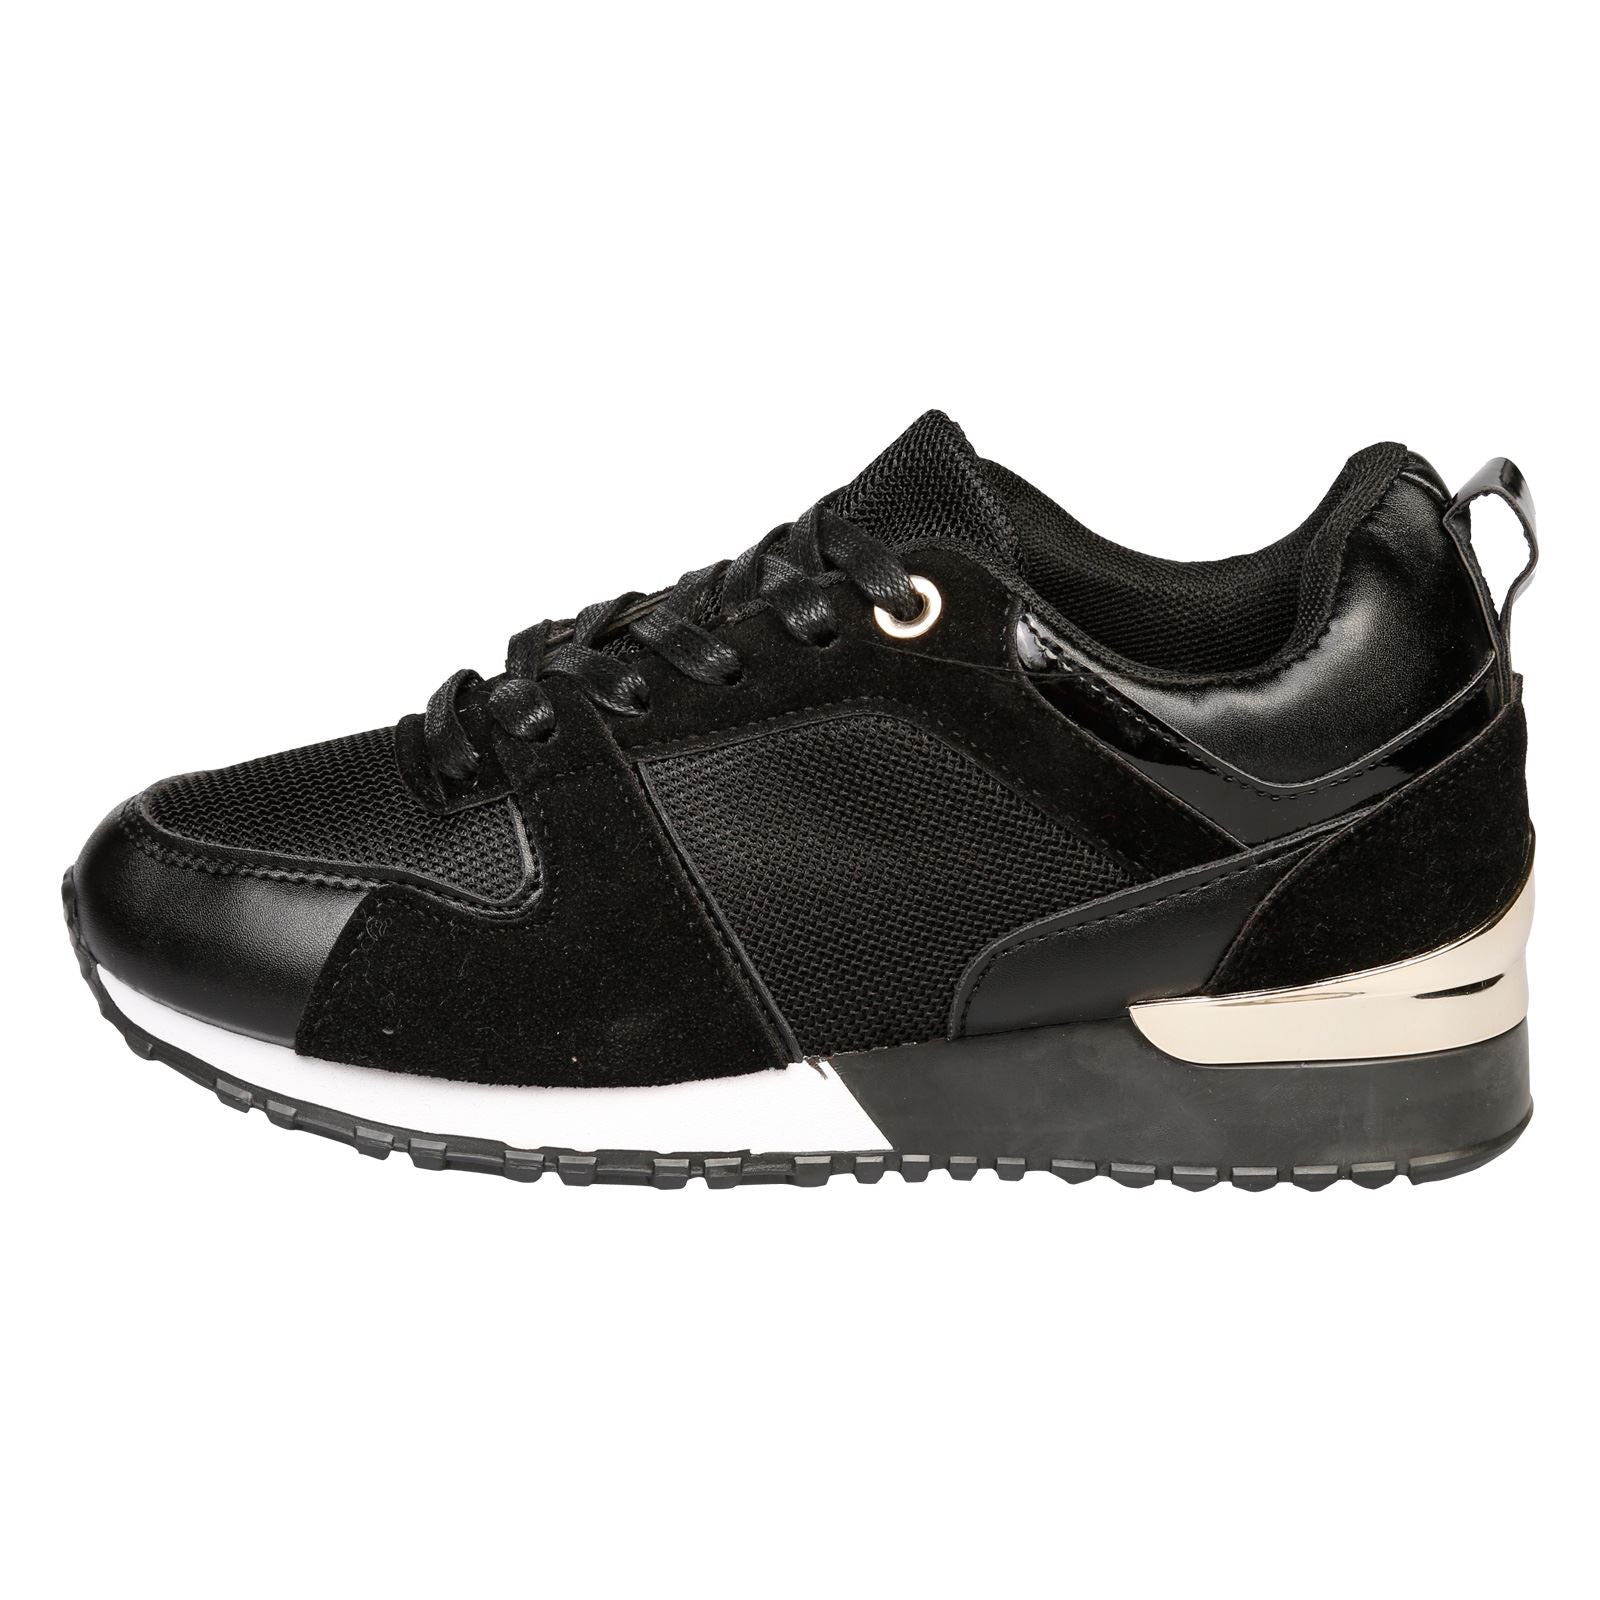 Blaire Lace Up Trainers in Black - Feet First Fashion